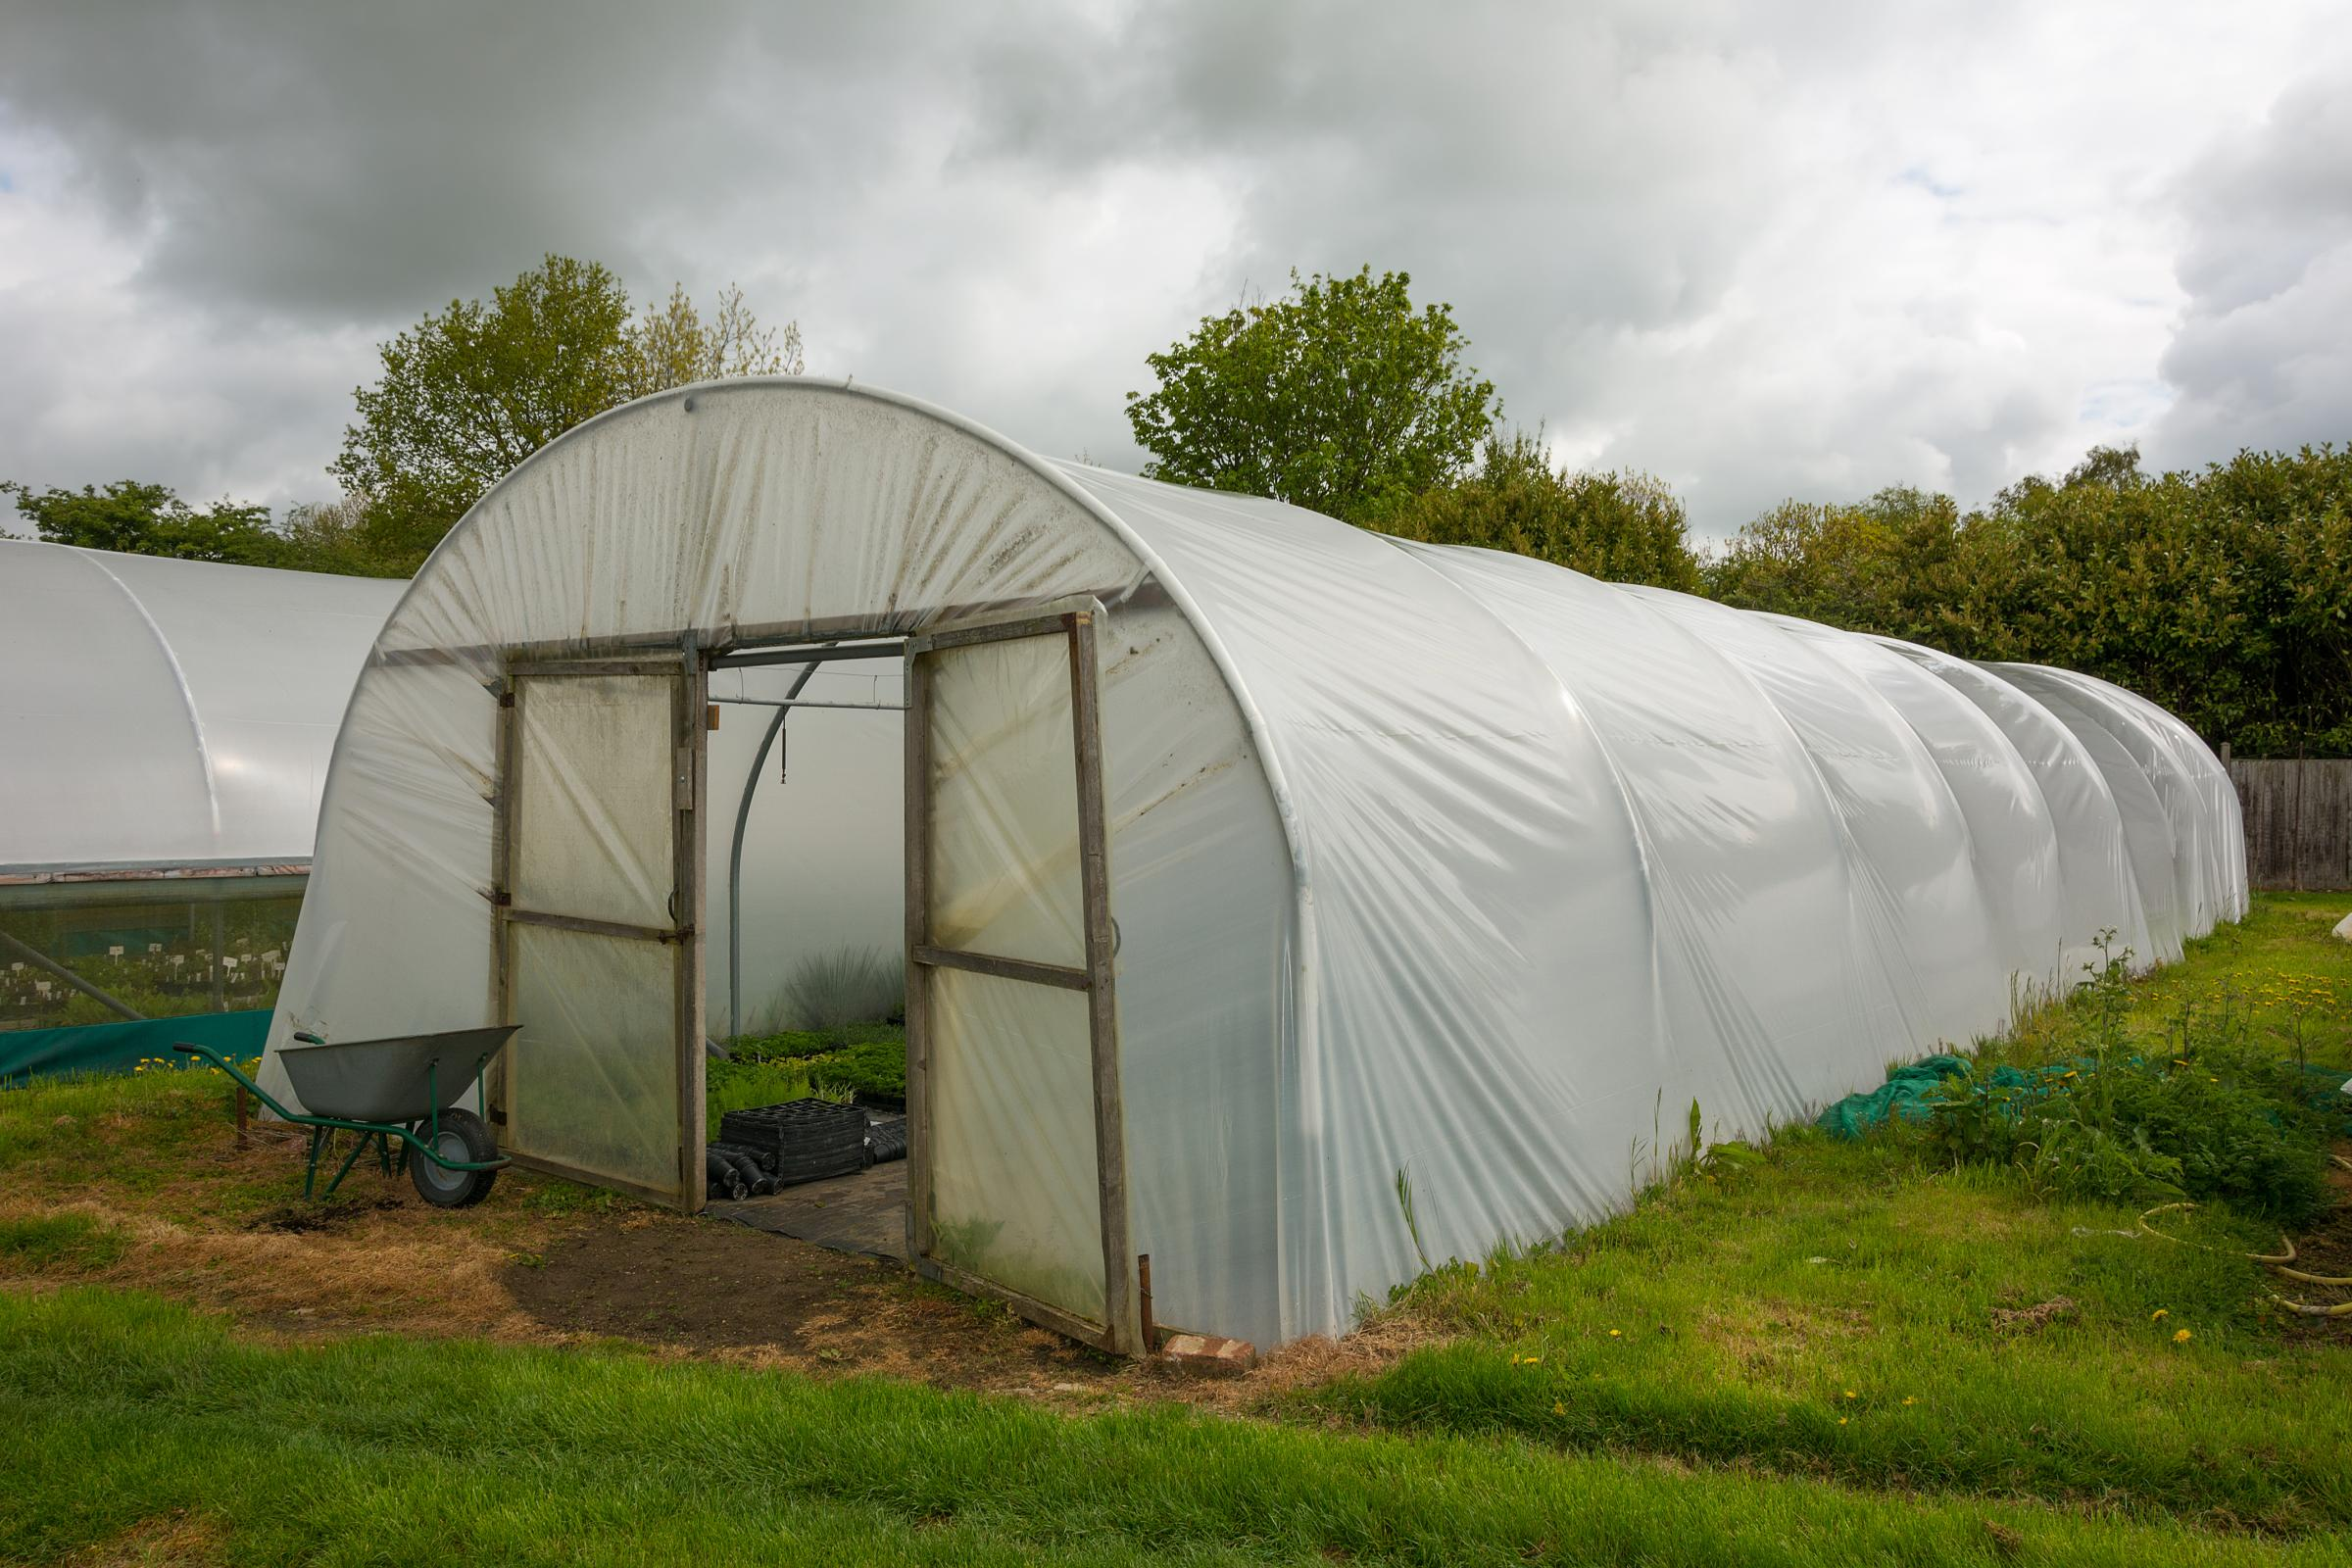 Horticultural polytunnel for growing tender plants